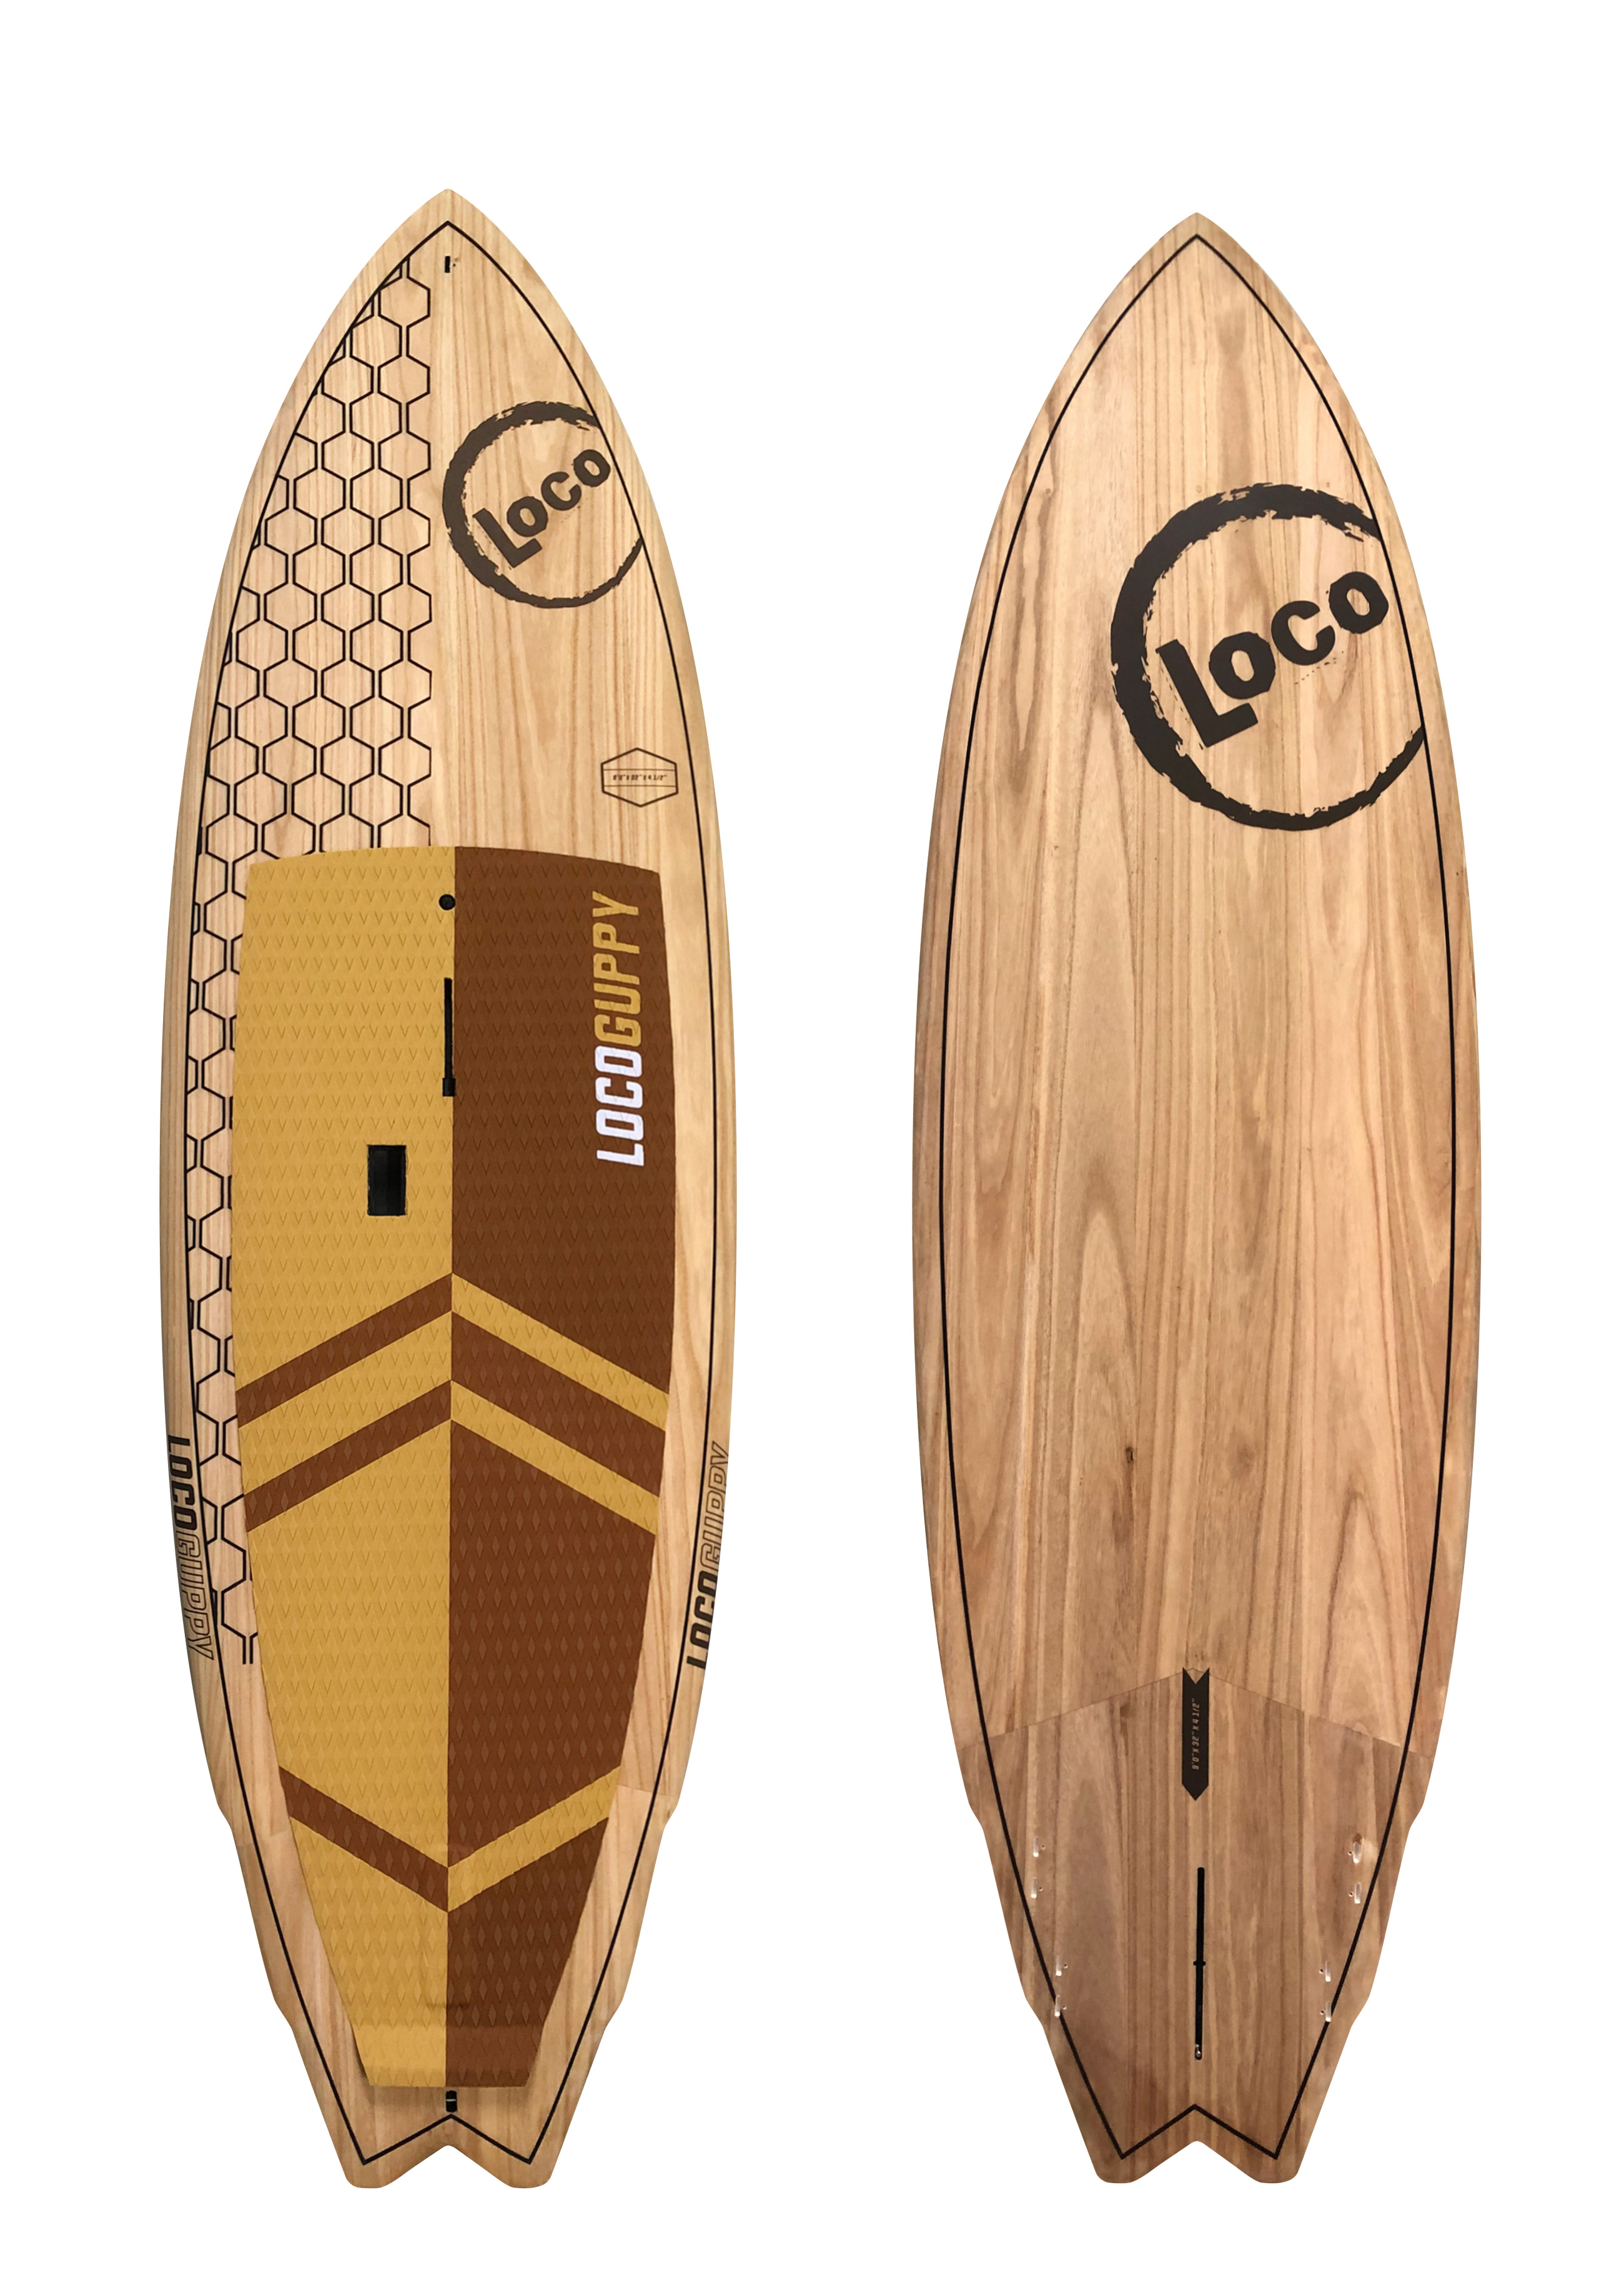 2020 Loco Guppy Stand Up Paddle Board Wood